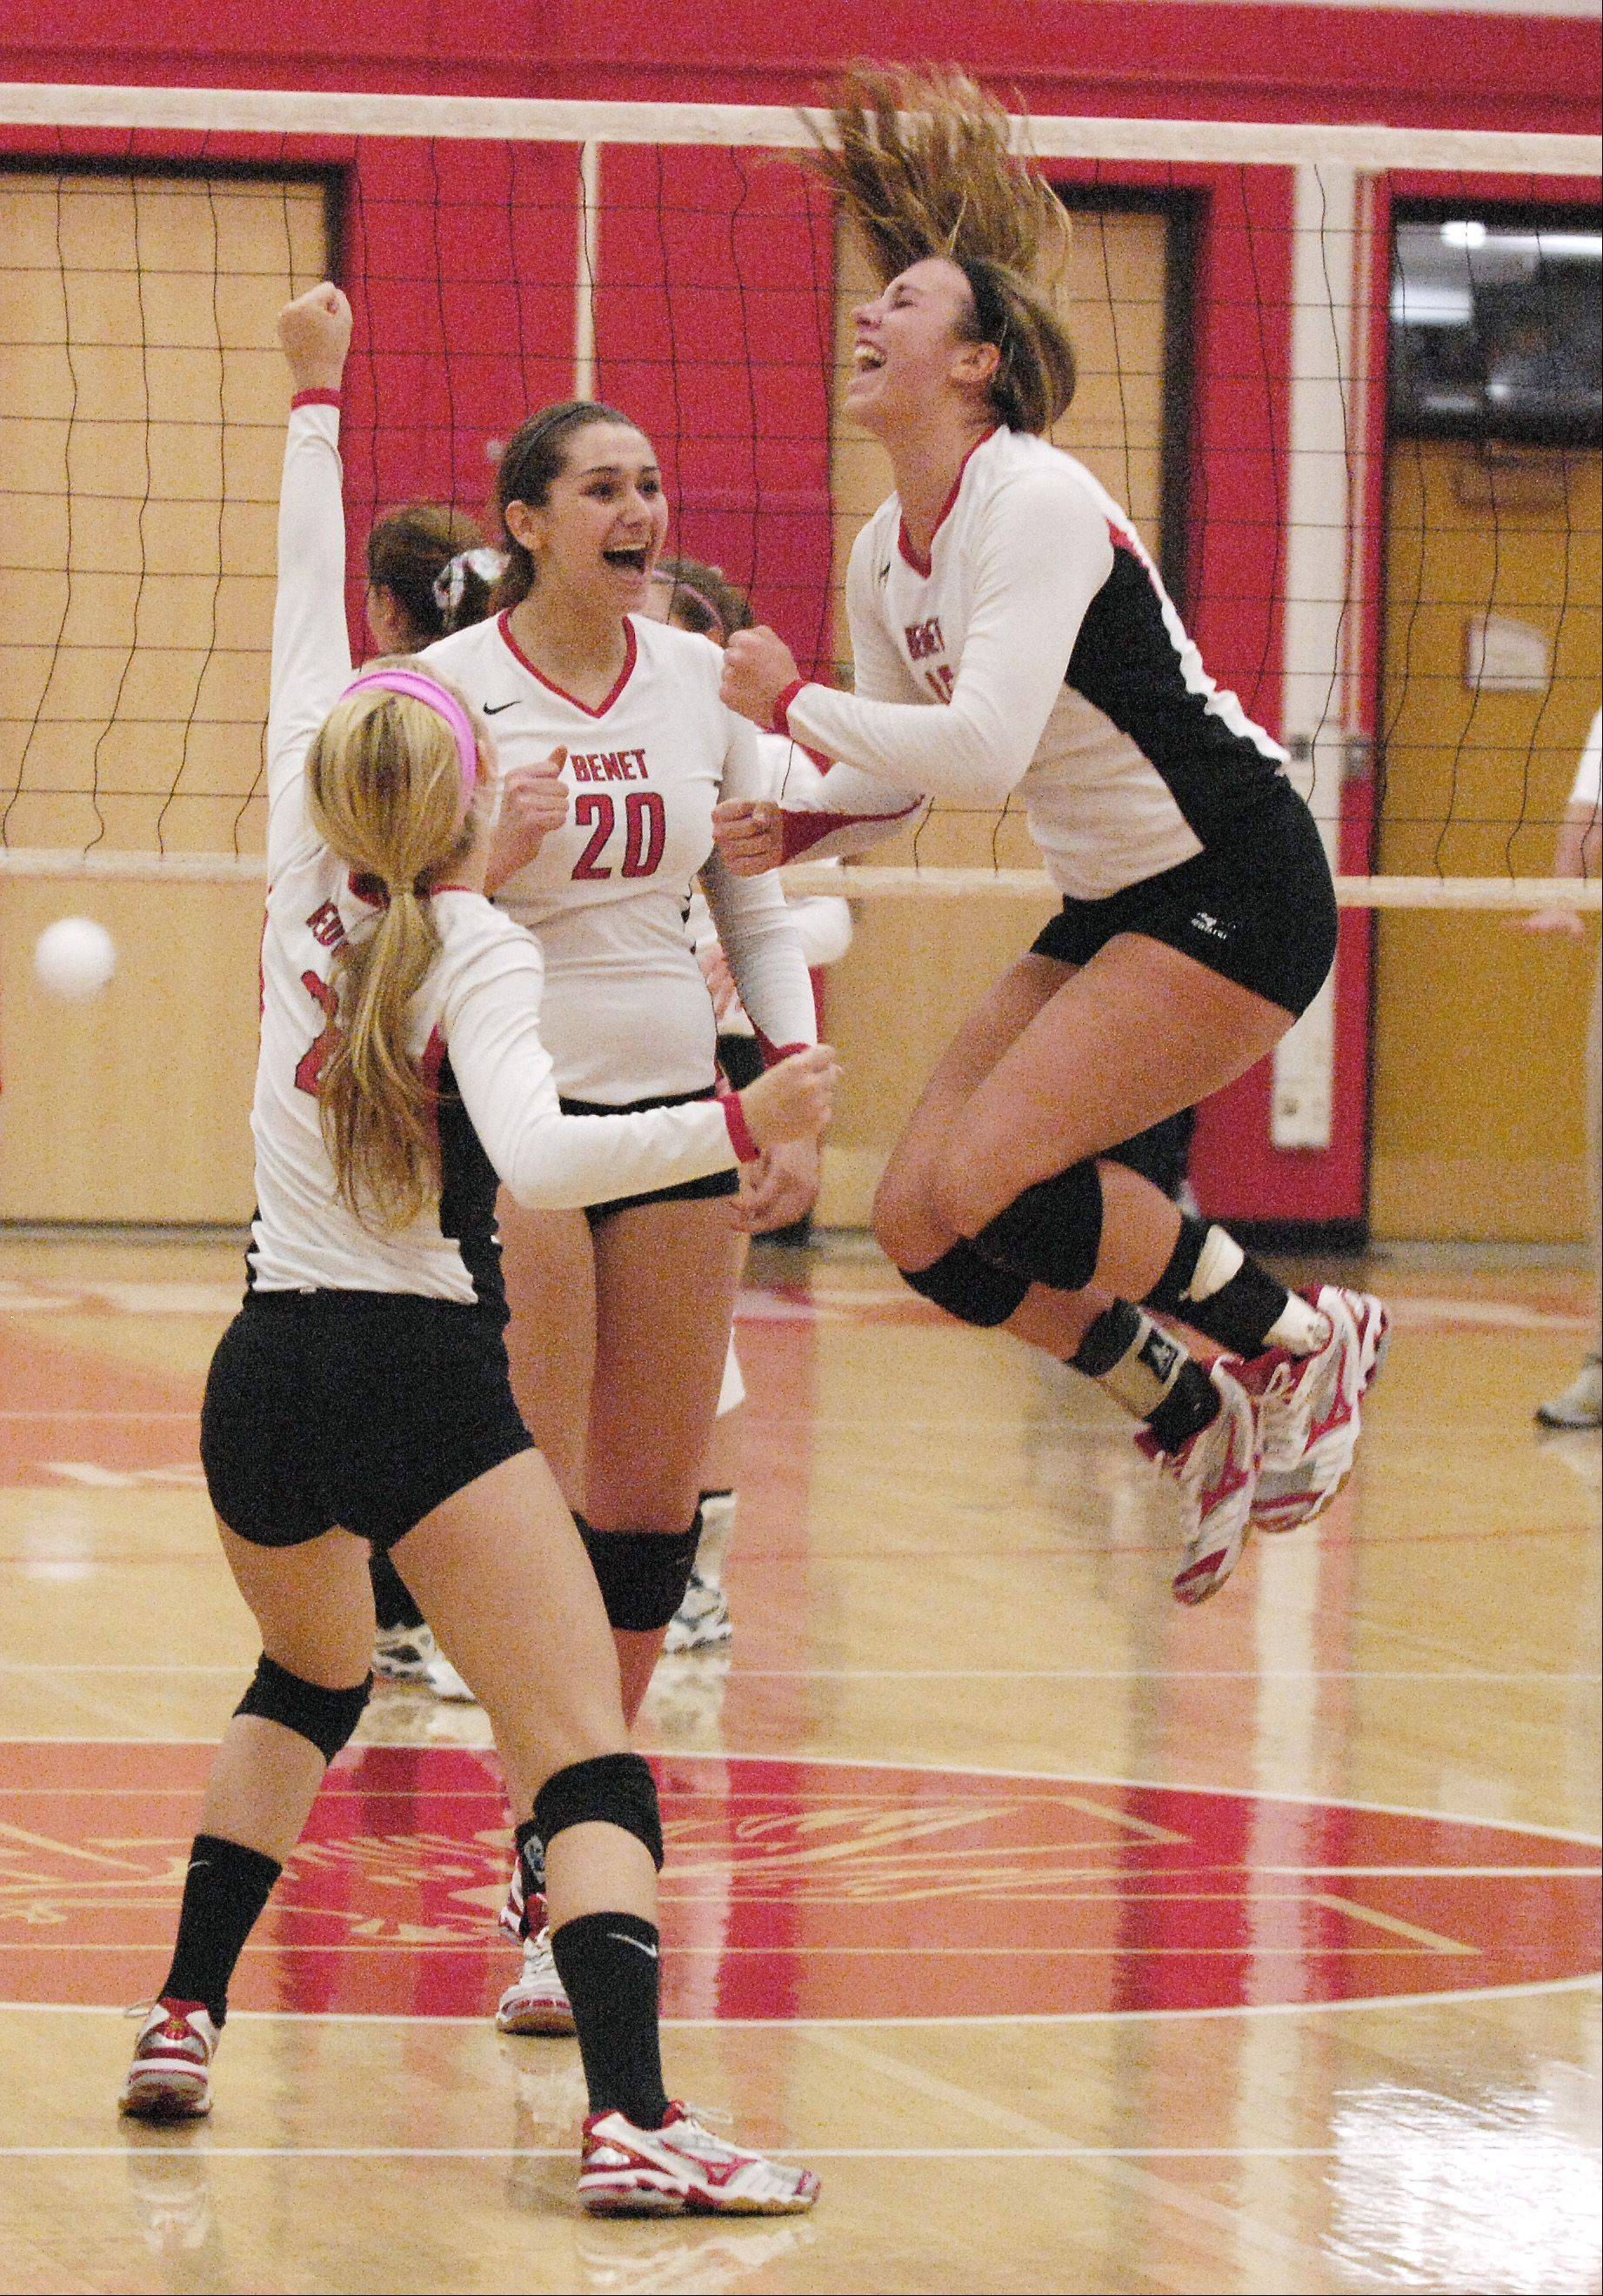 Scouting this week's DuPage County volleyball sectionals